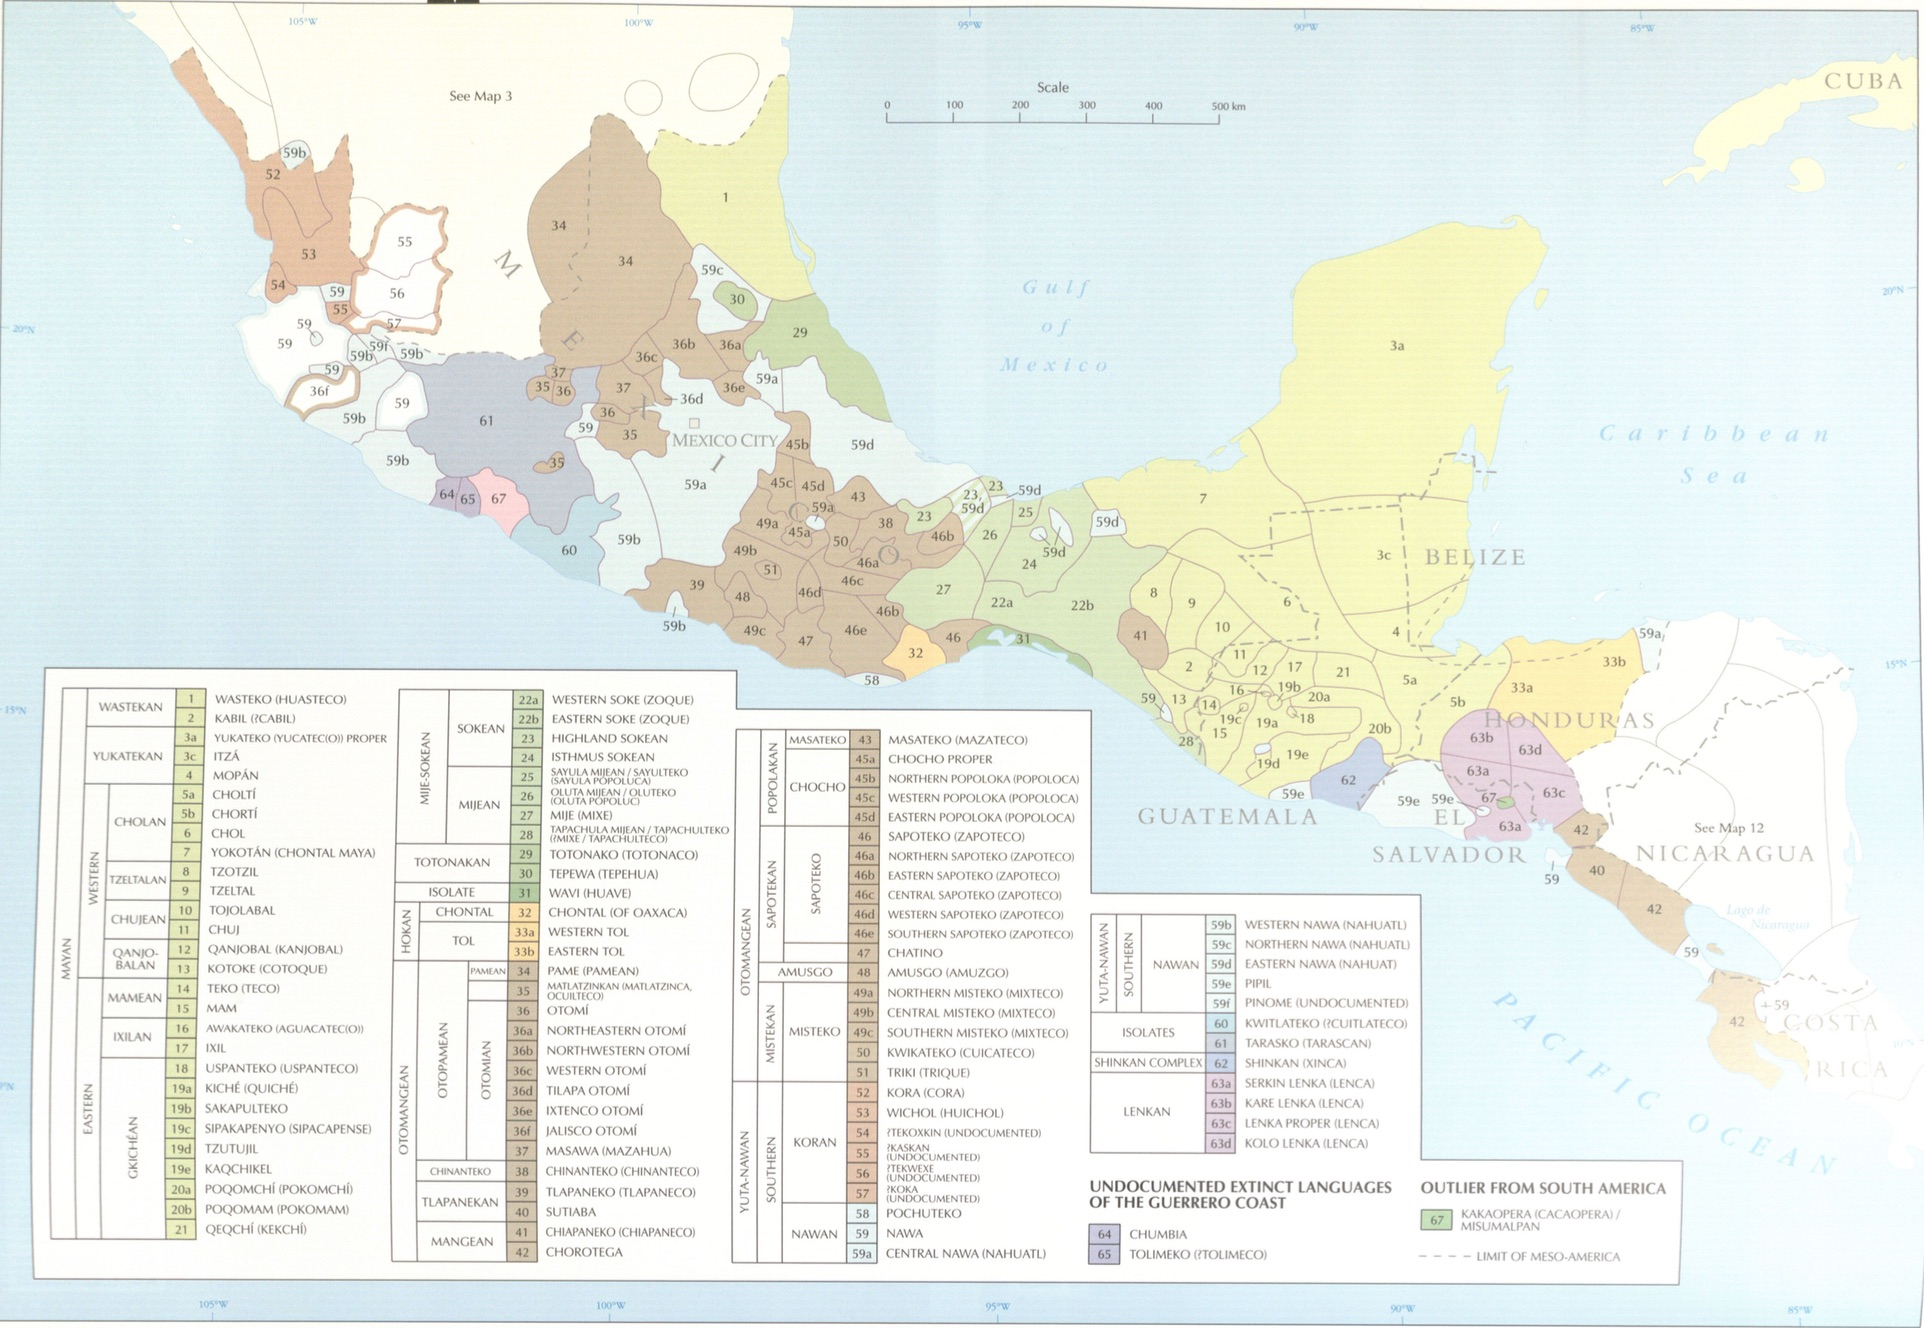 Map of Mesoamerica with pre-European colonization languages highlighted